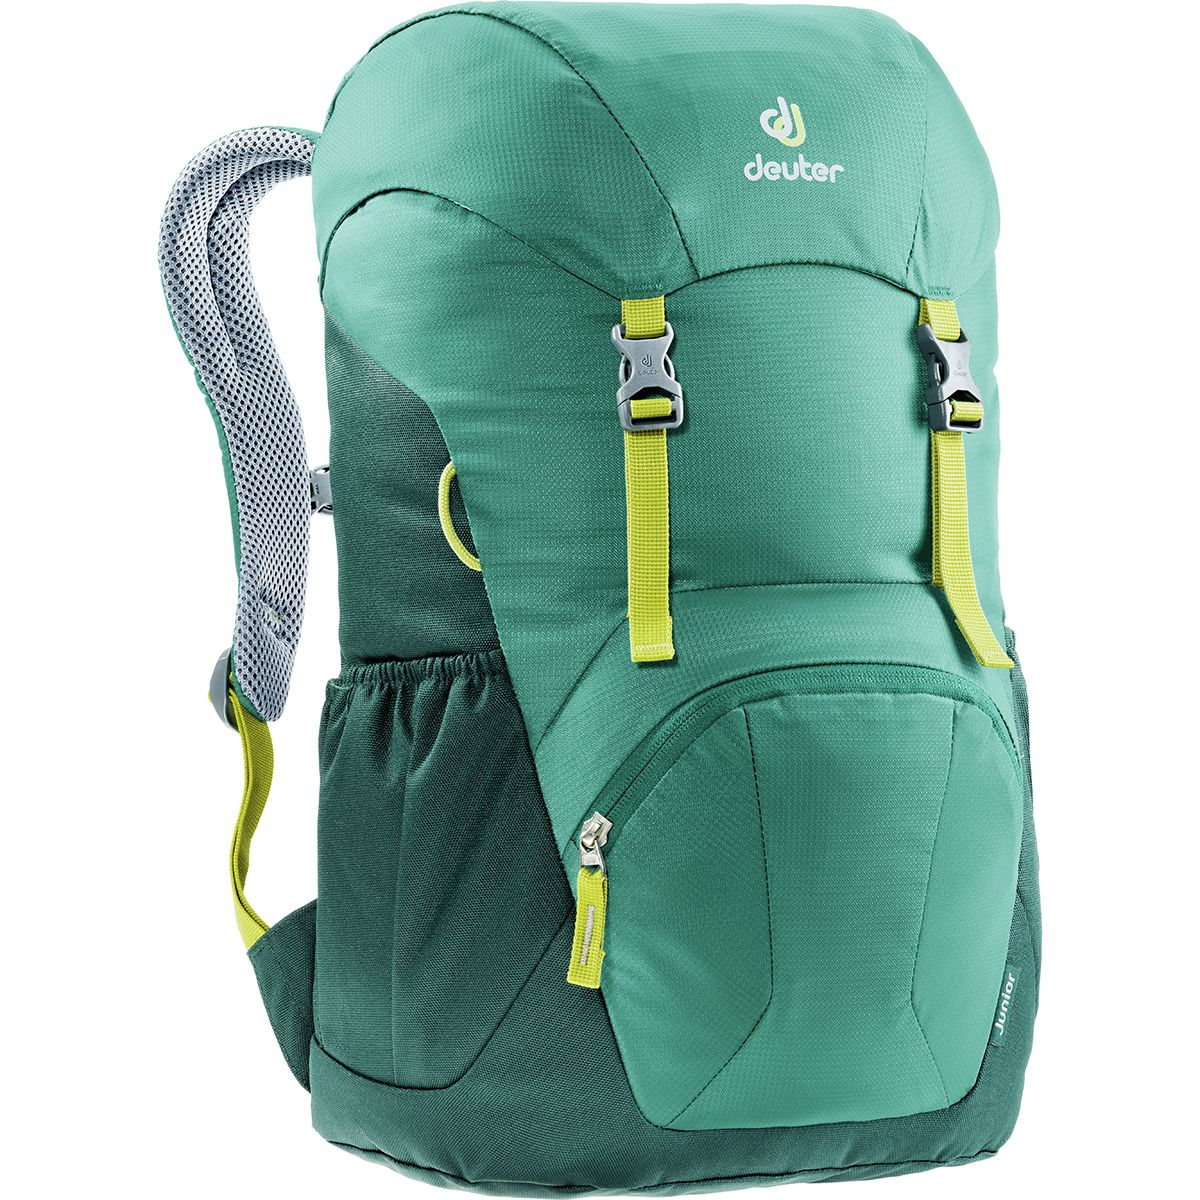 Deuter Junior Children's Backpack